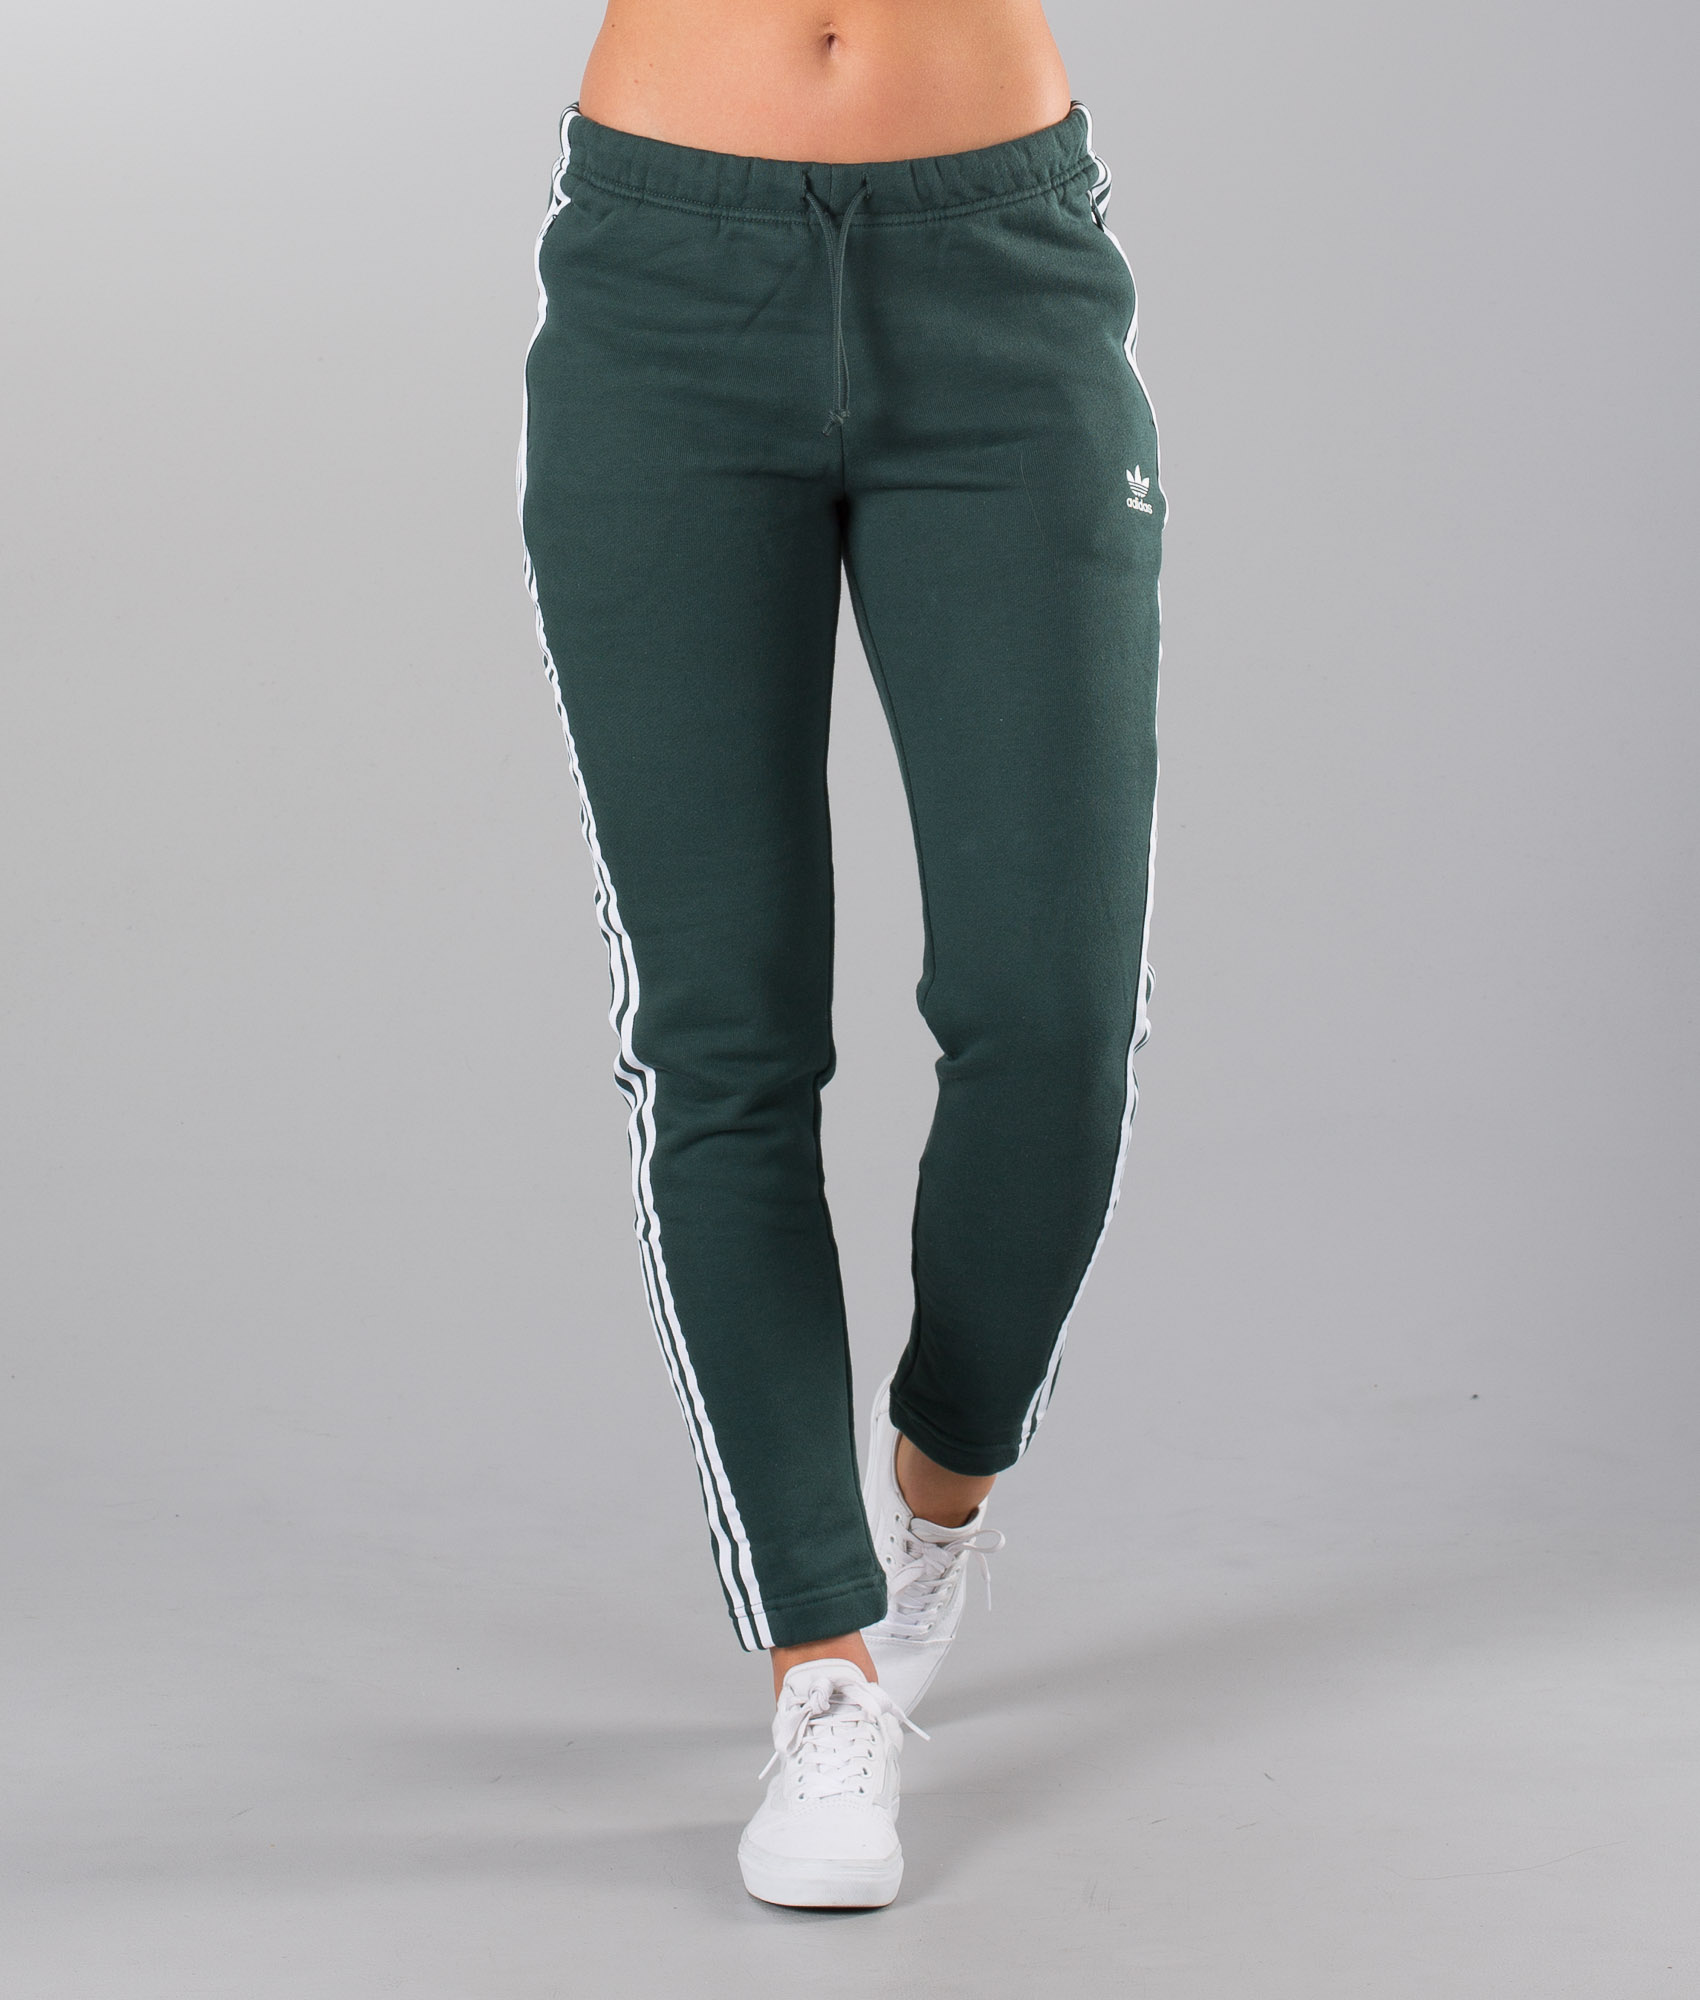 Originals Cuf Pantalon Adidas Tp Green Regular Mineral QxEerdCBoW